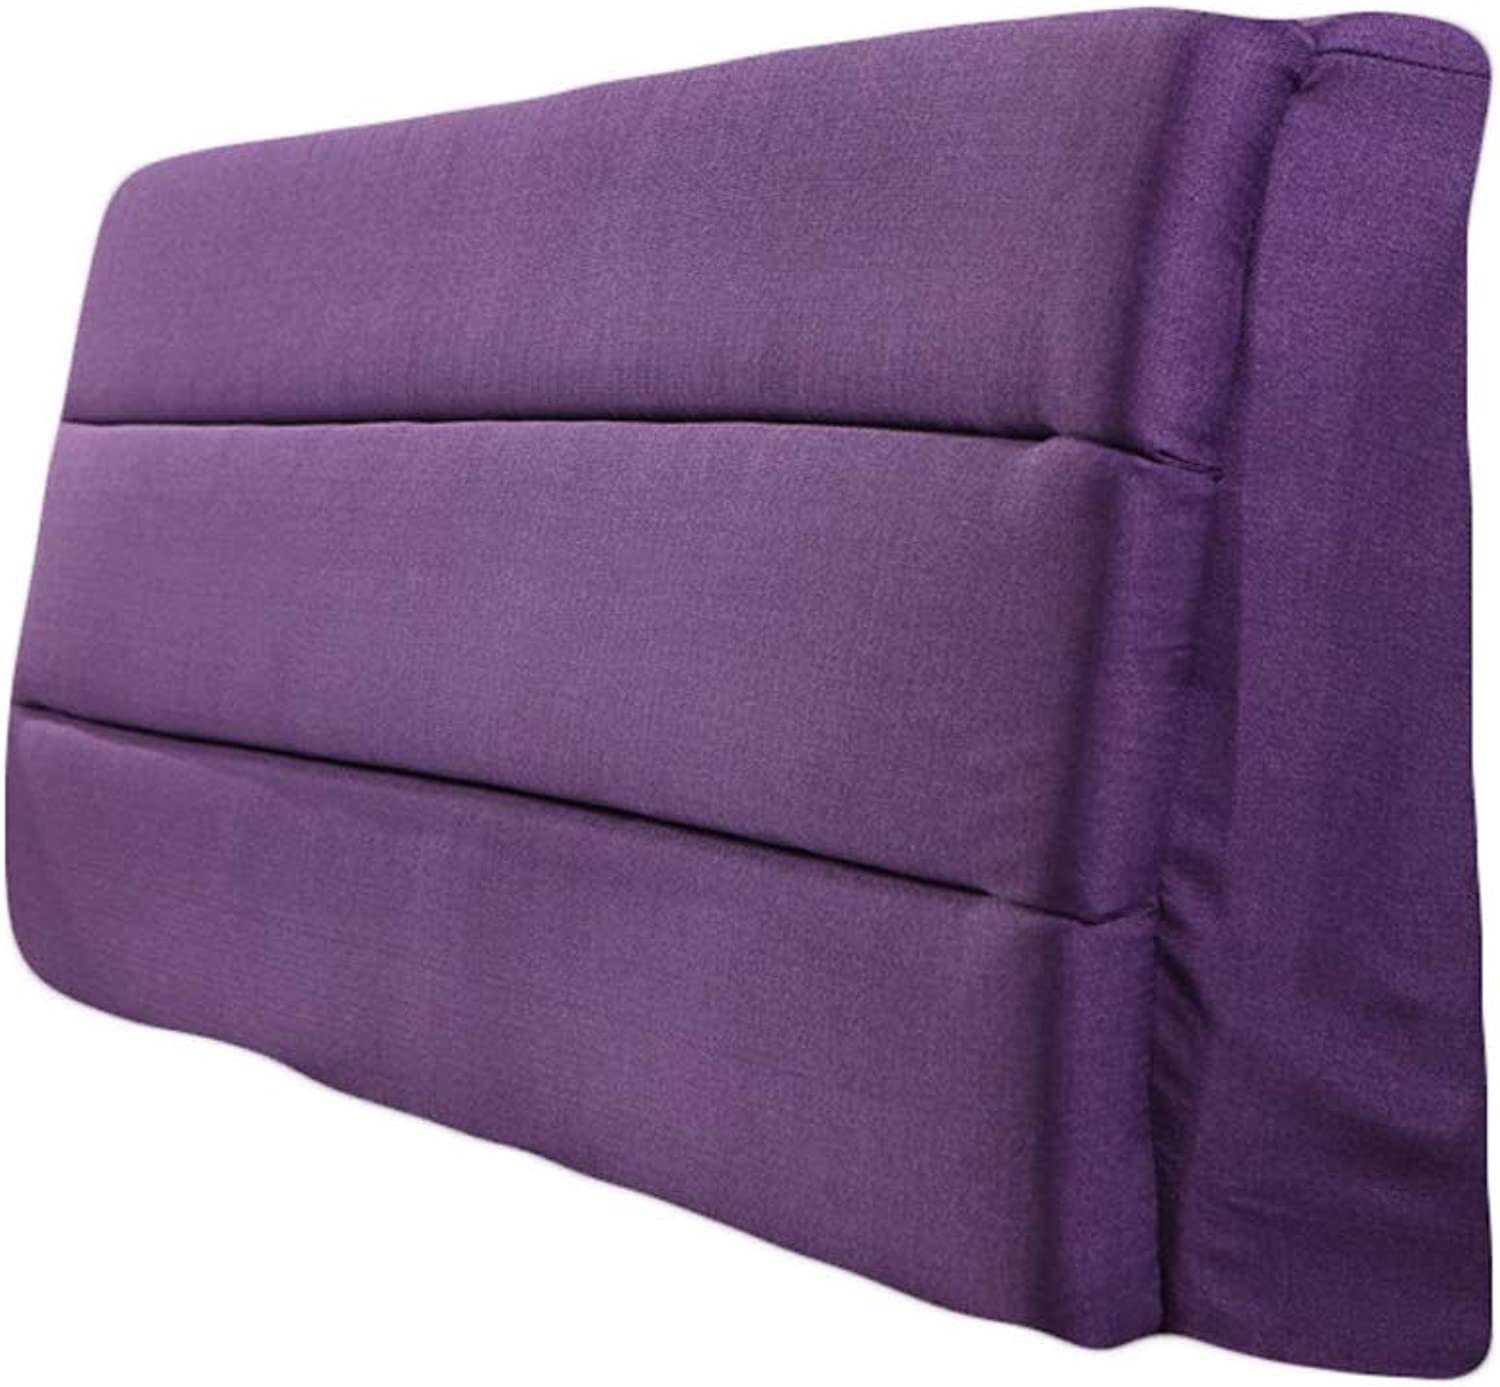 LPD-Bed backrest Cushion Backrest Cushion Bedside Fit The Bed with BedHead Relieve Fatigue Filling Sponge Washable, Purple, 4 Kinds Sizes (color   Purple, Size   70X50CM)